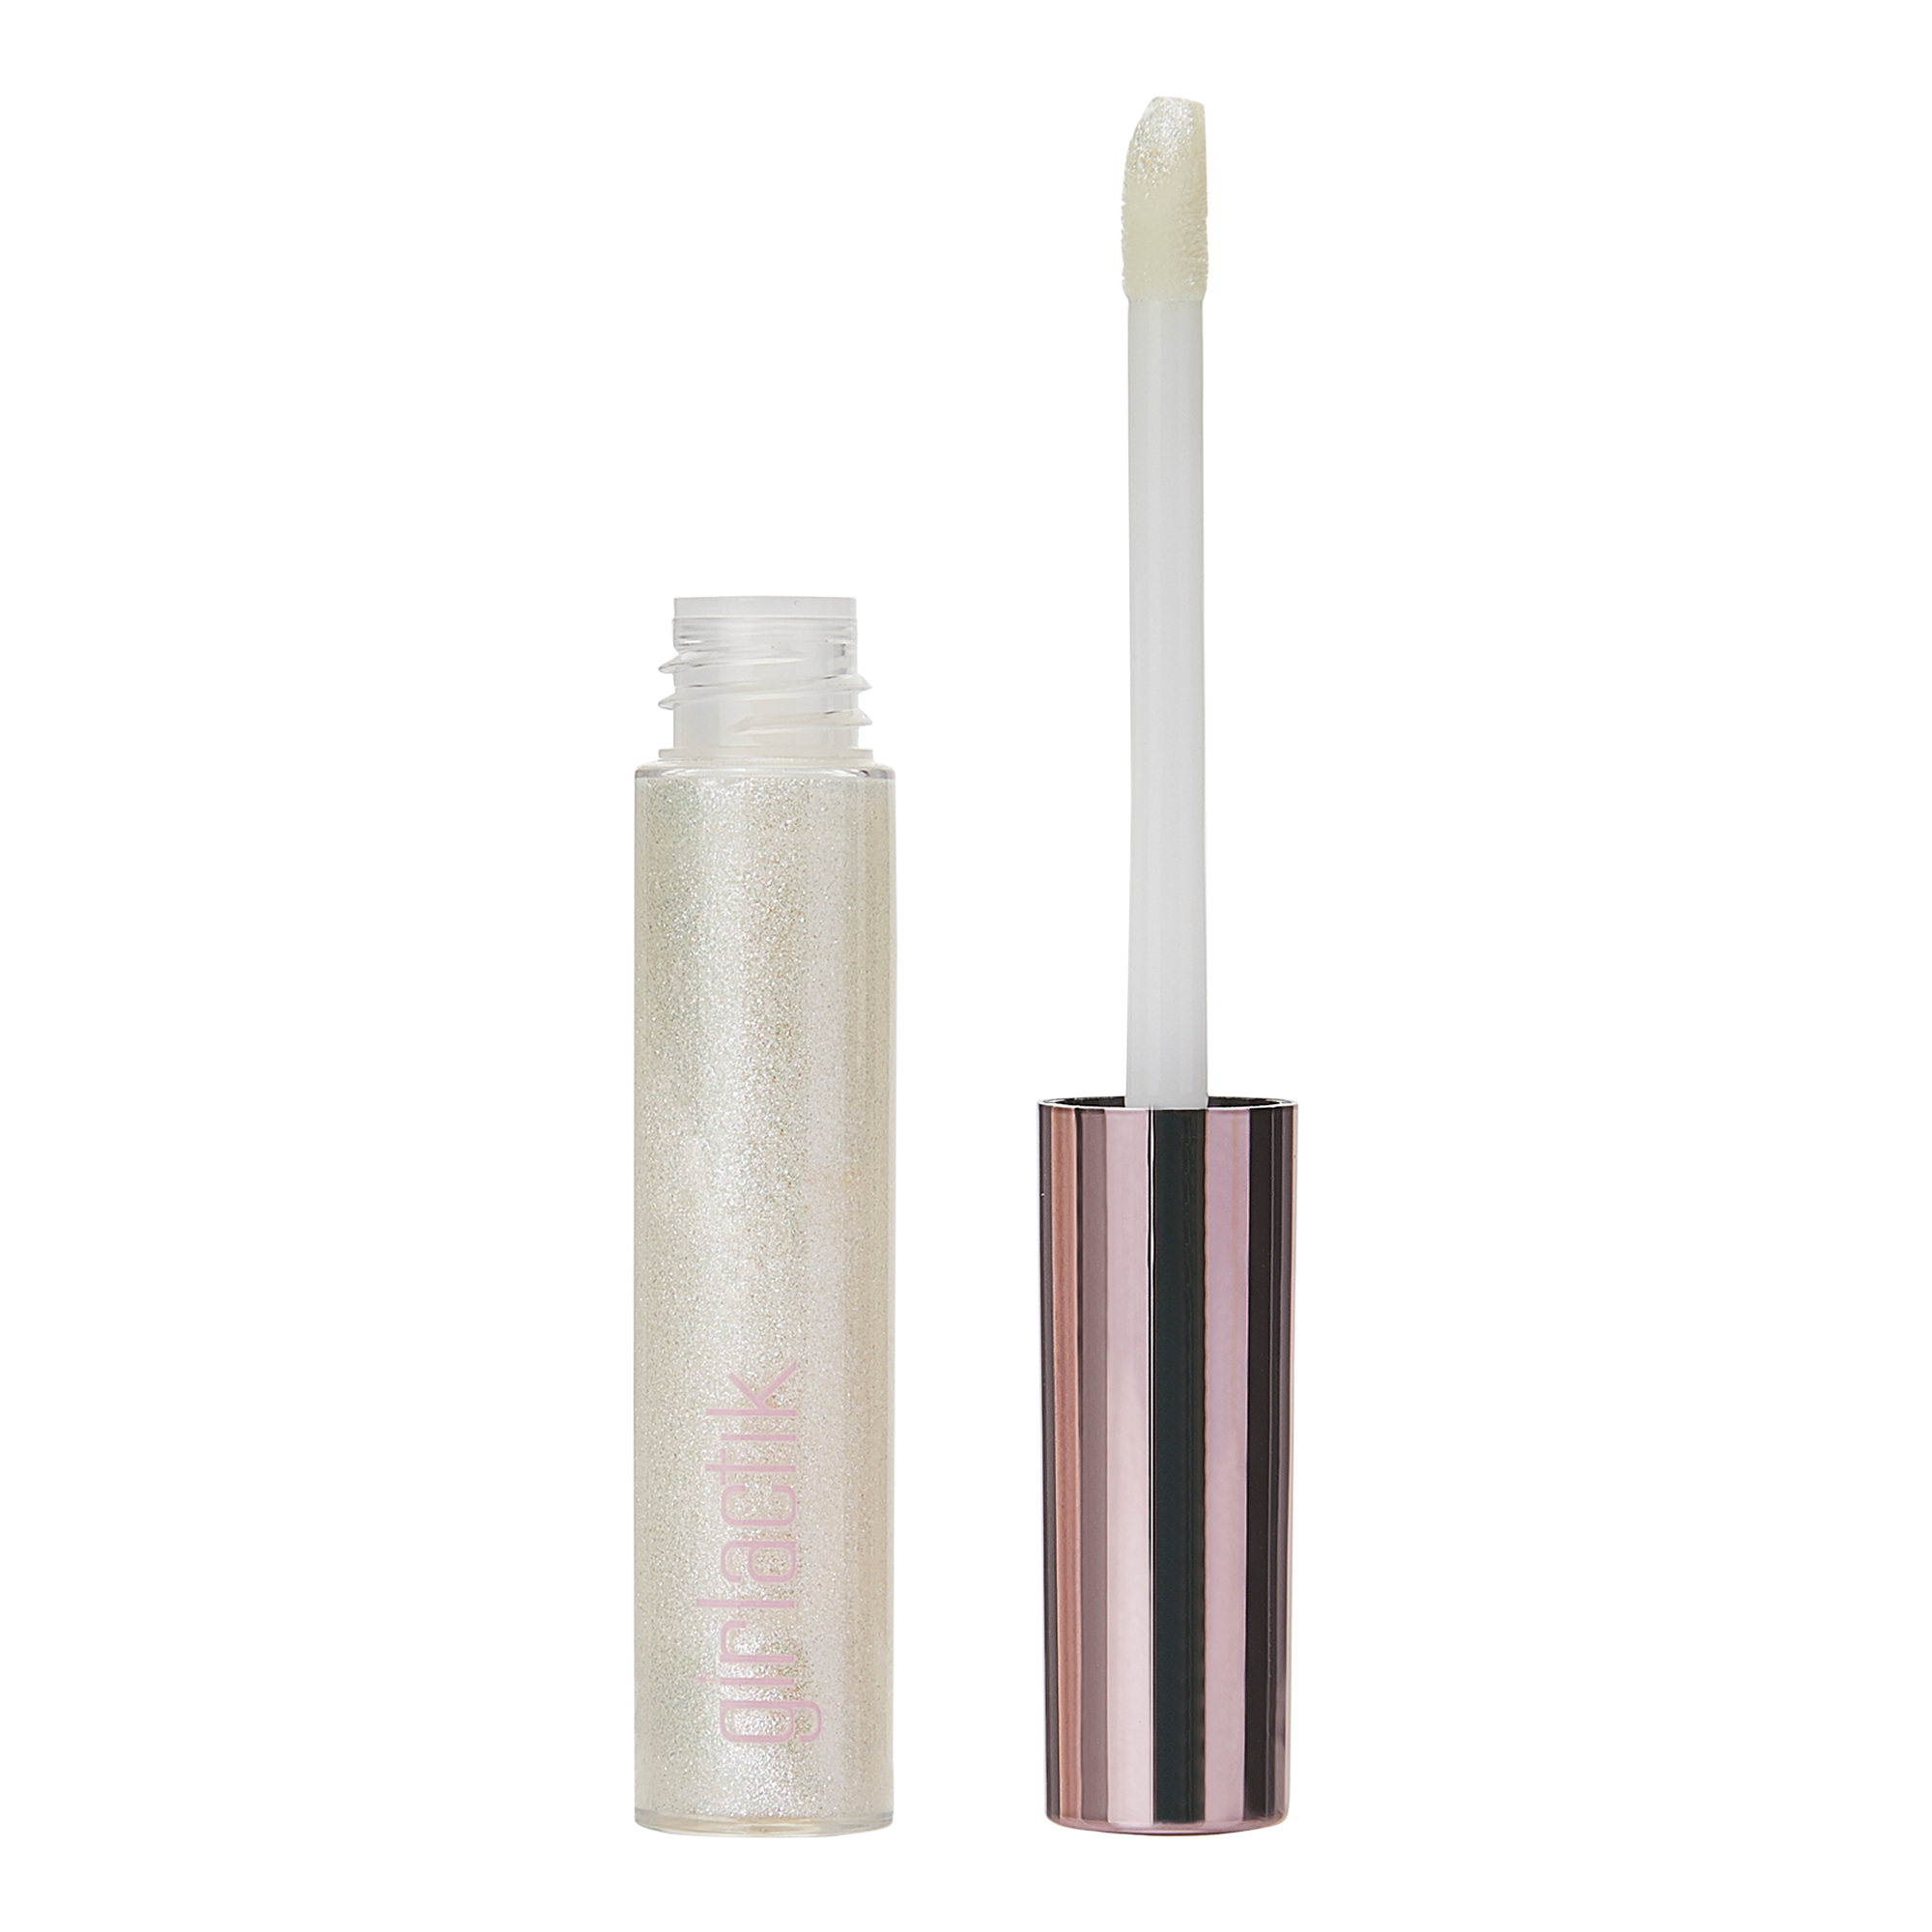 Lip Pearls Glosser Lip Gloss